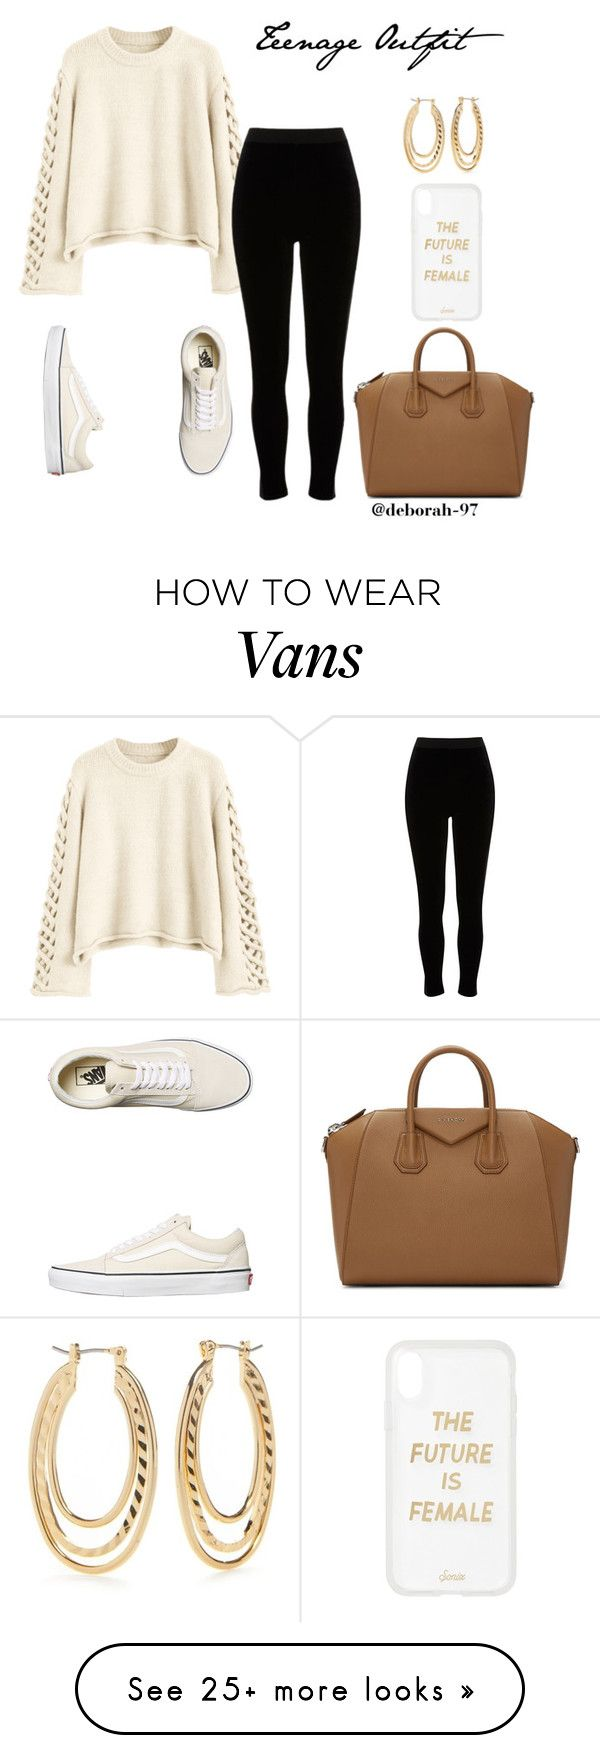 """Teenage Outfit 12"" by deborah-97 on Polyvore featuring River Island, Vans, Kim Rogers, Sonix and Givenchy"